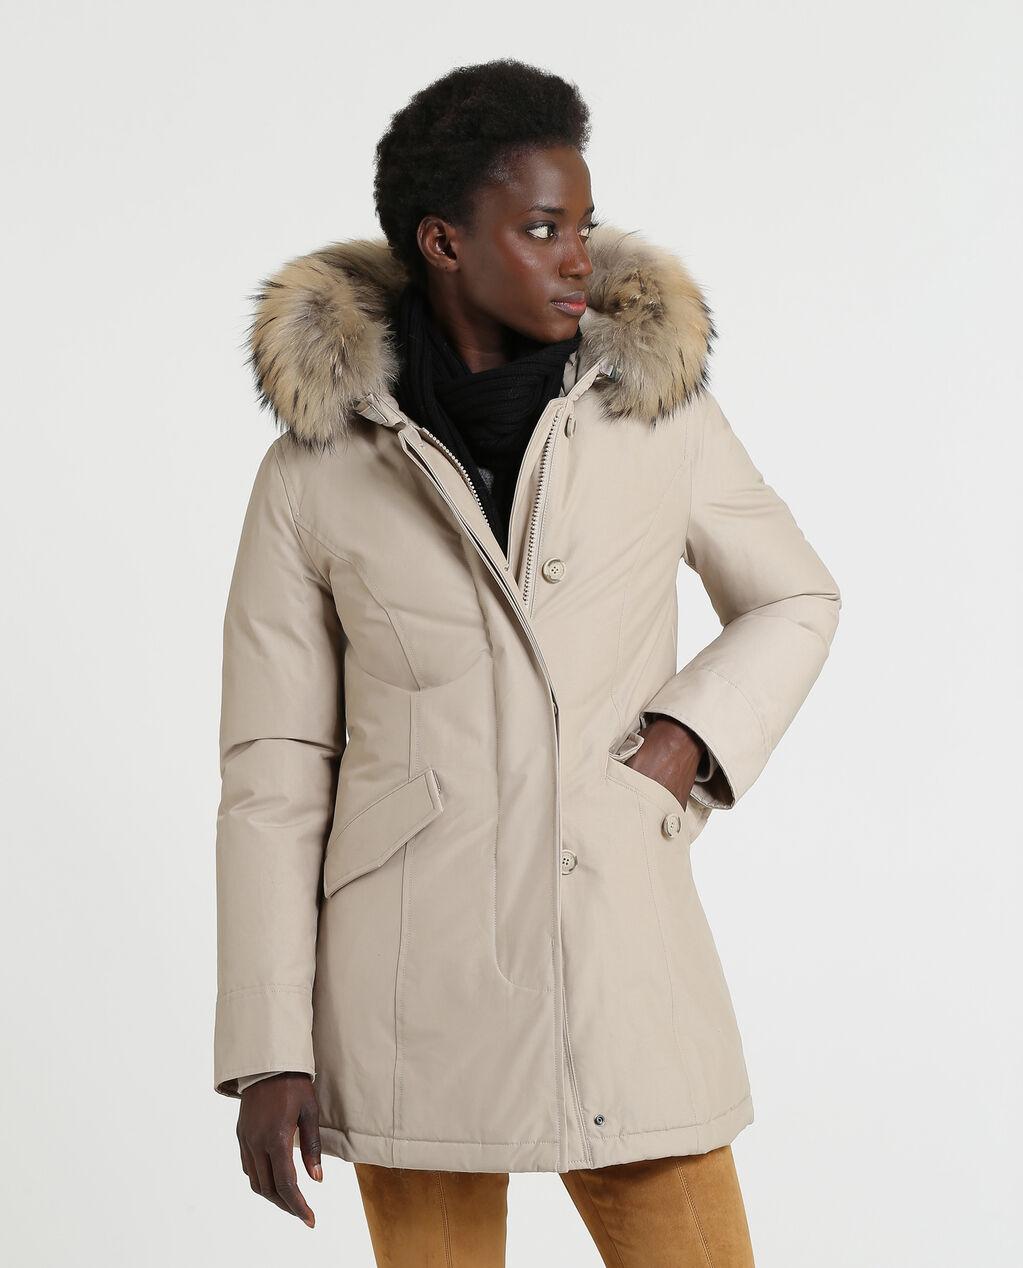 new style 5987f 1cfb2 WOOLRICH CAPOSPALLA - OUTERWEAR W'S Arctic Parka Fr ...